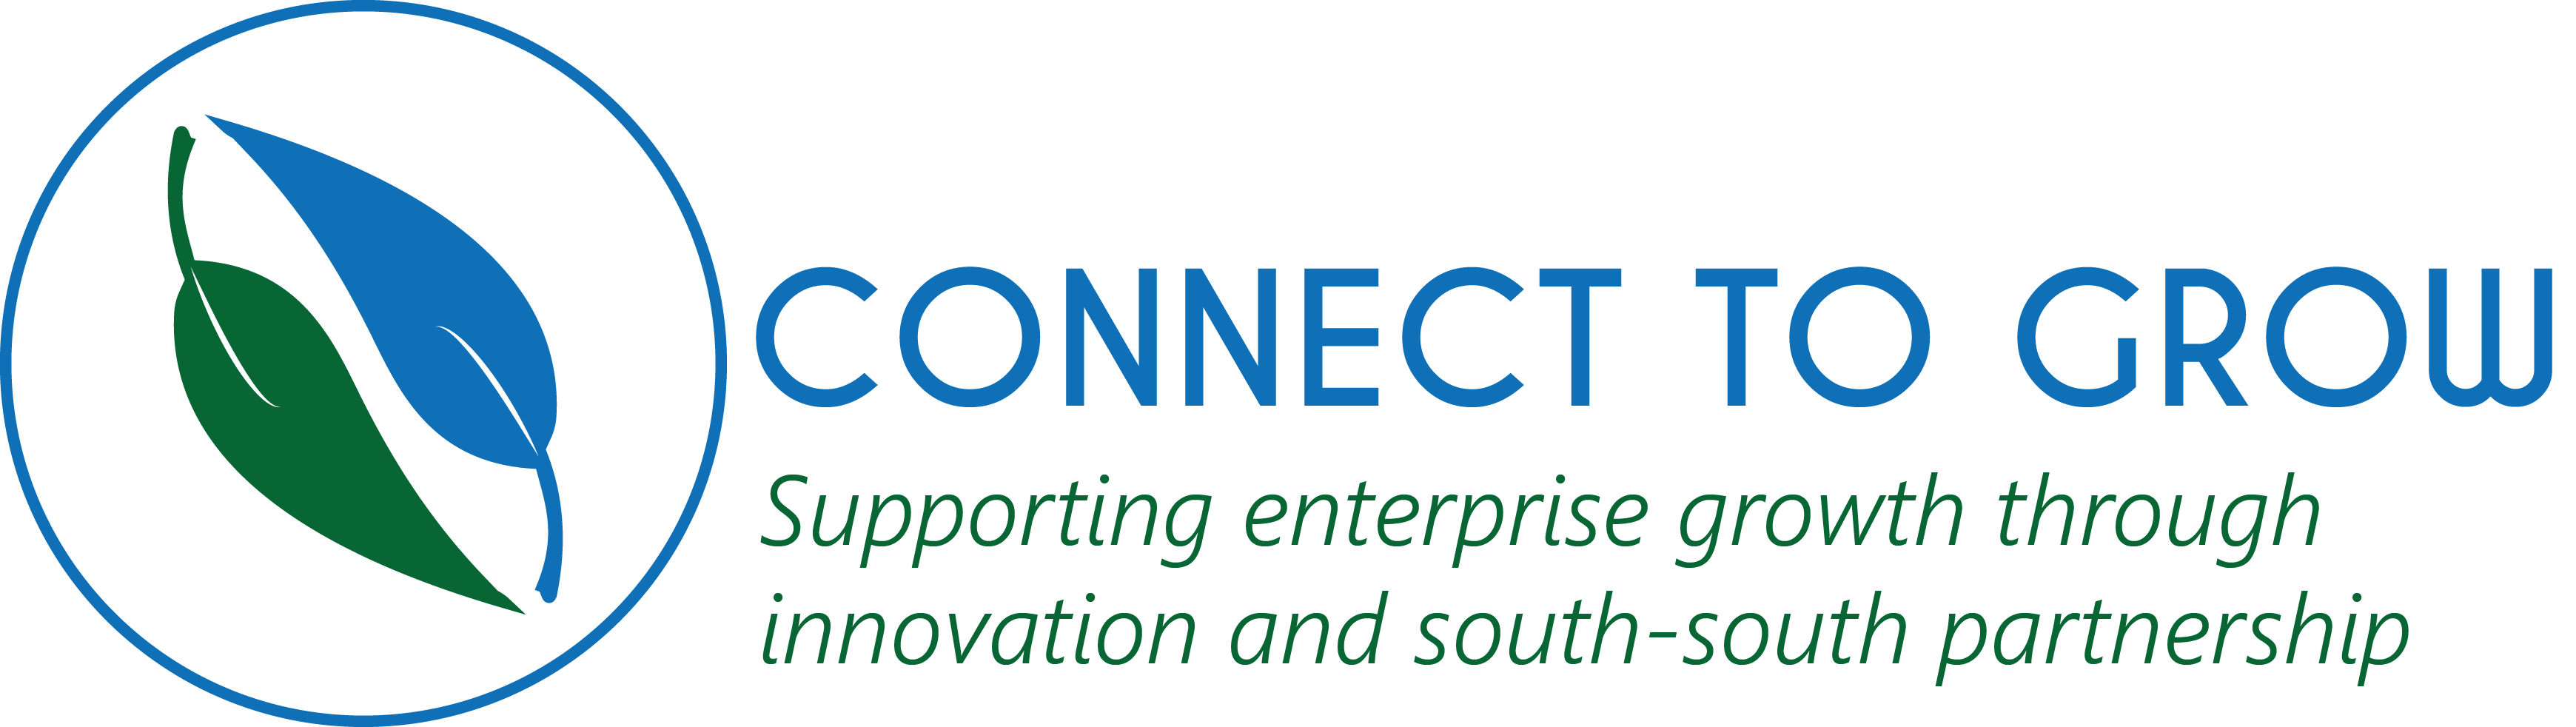 Register for Connect to grow for a chance to win £35,000